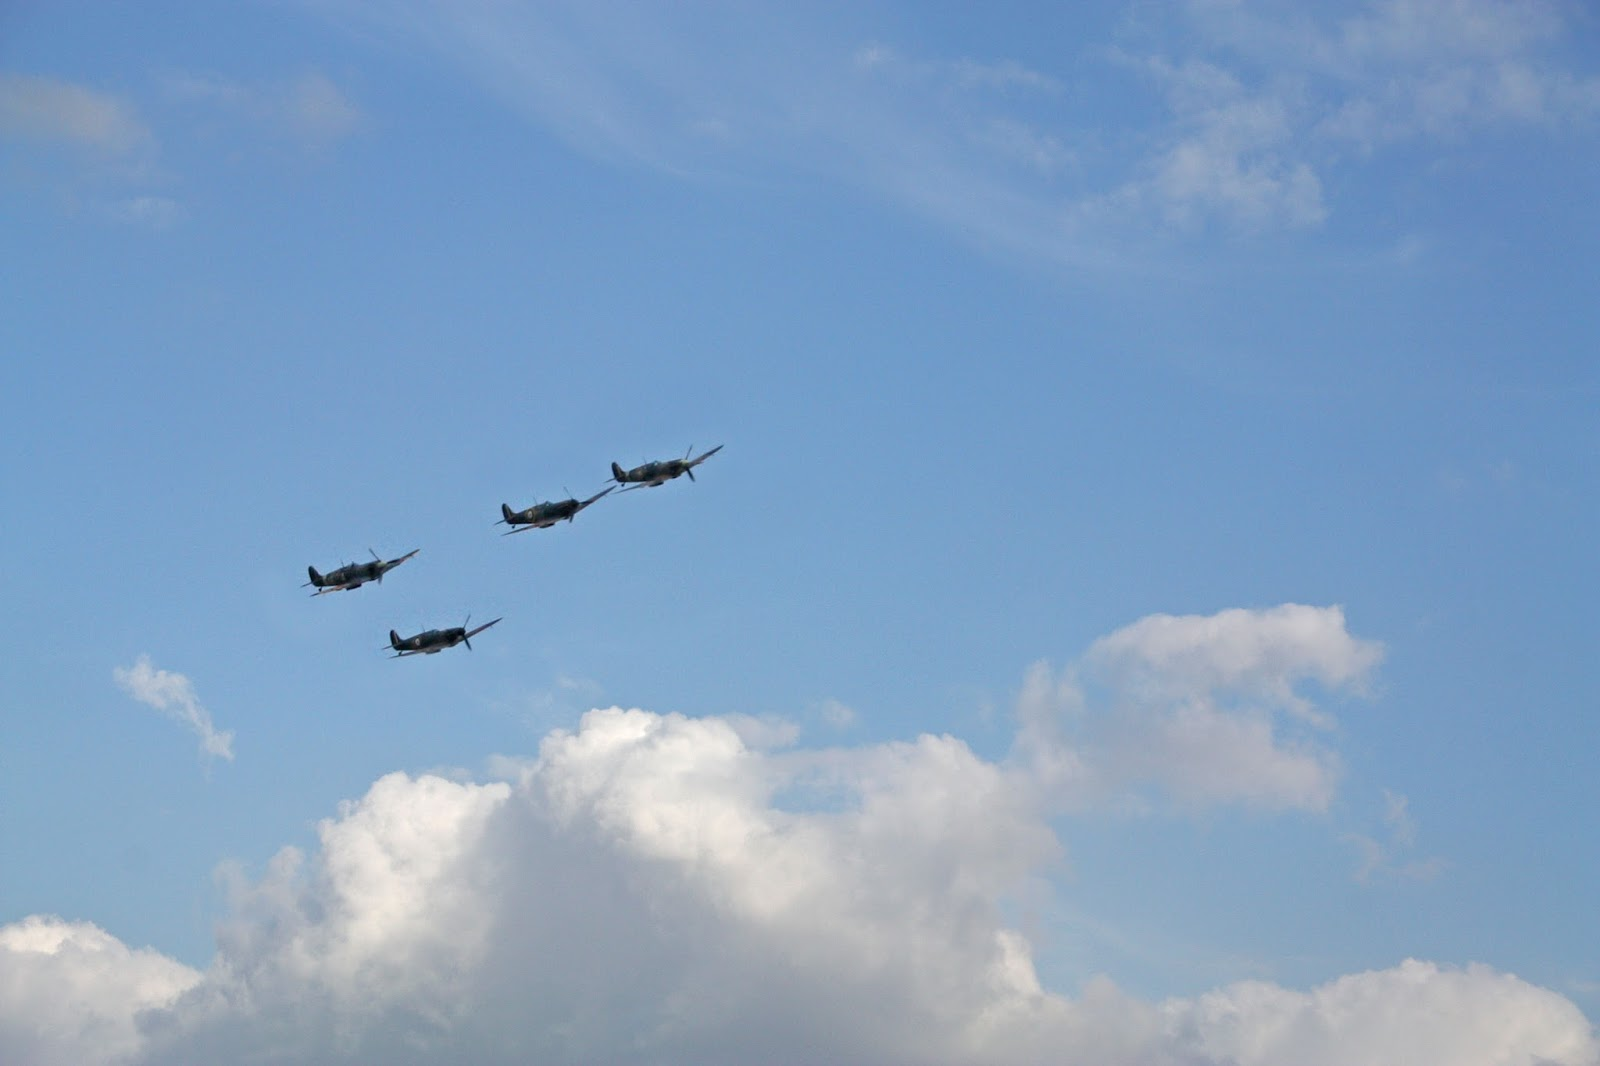 Duxford Airshow September 14th 2014 - Four Spitfires